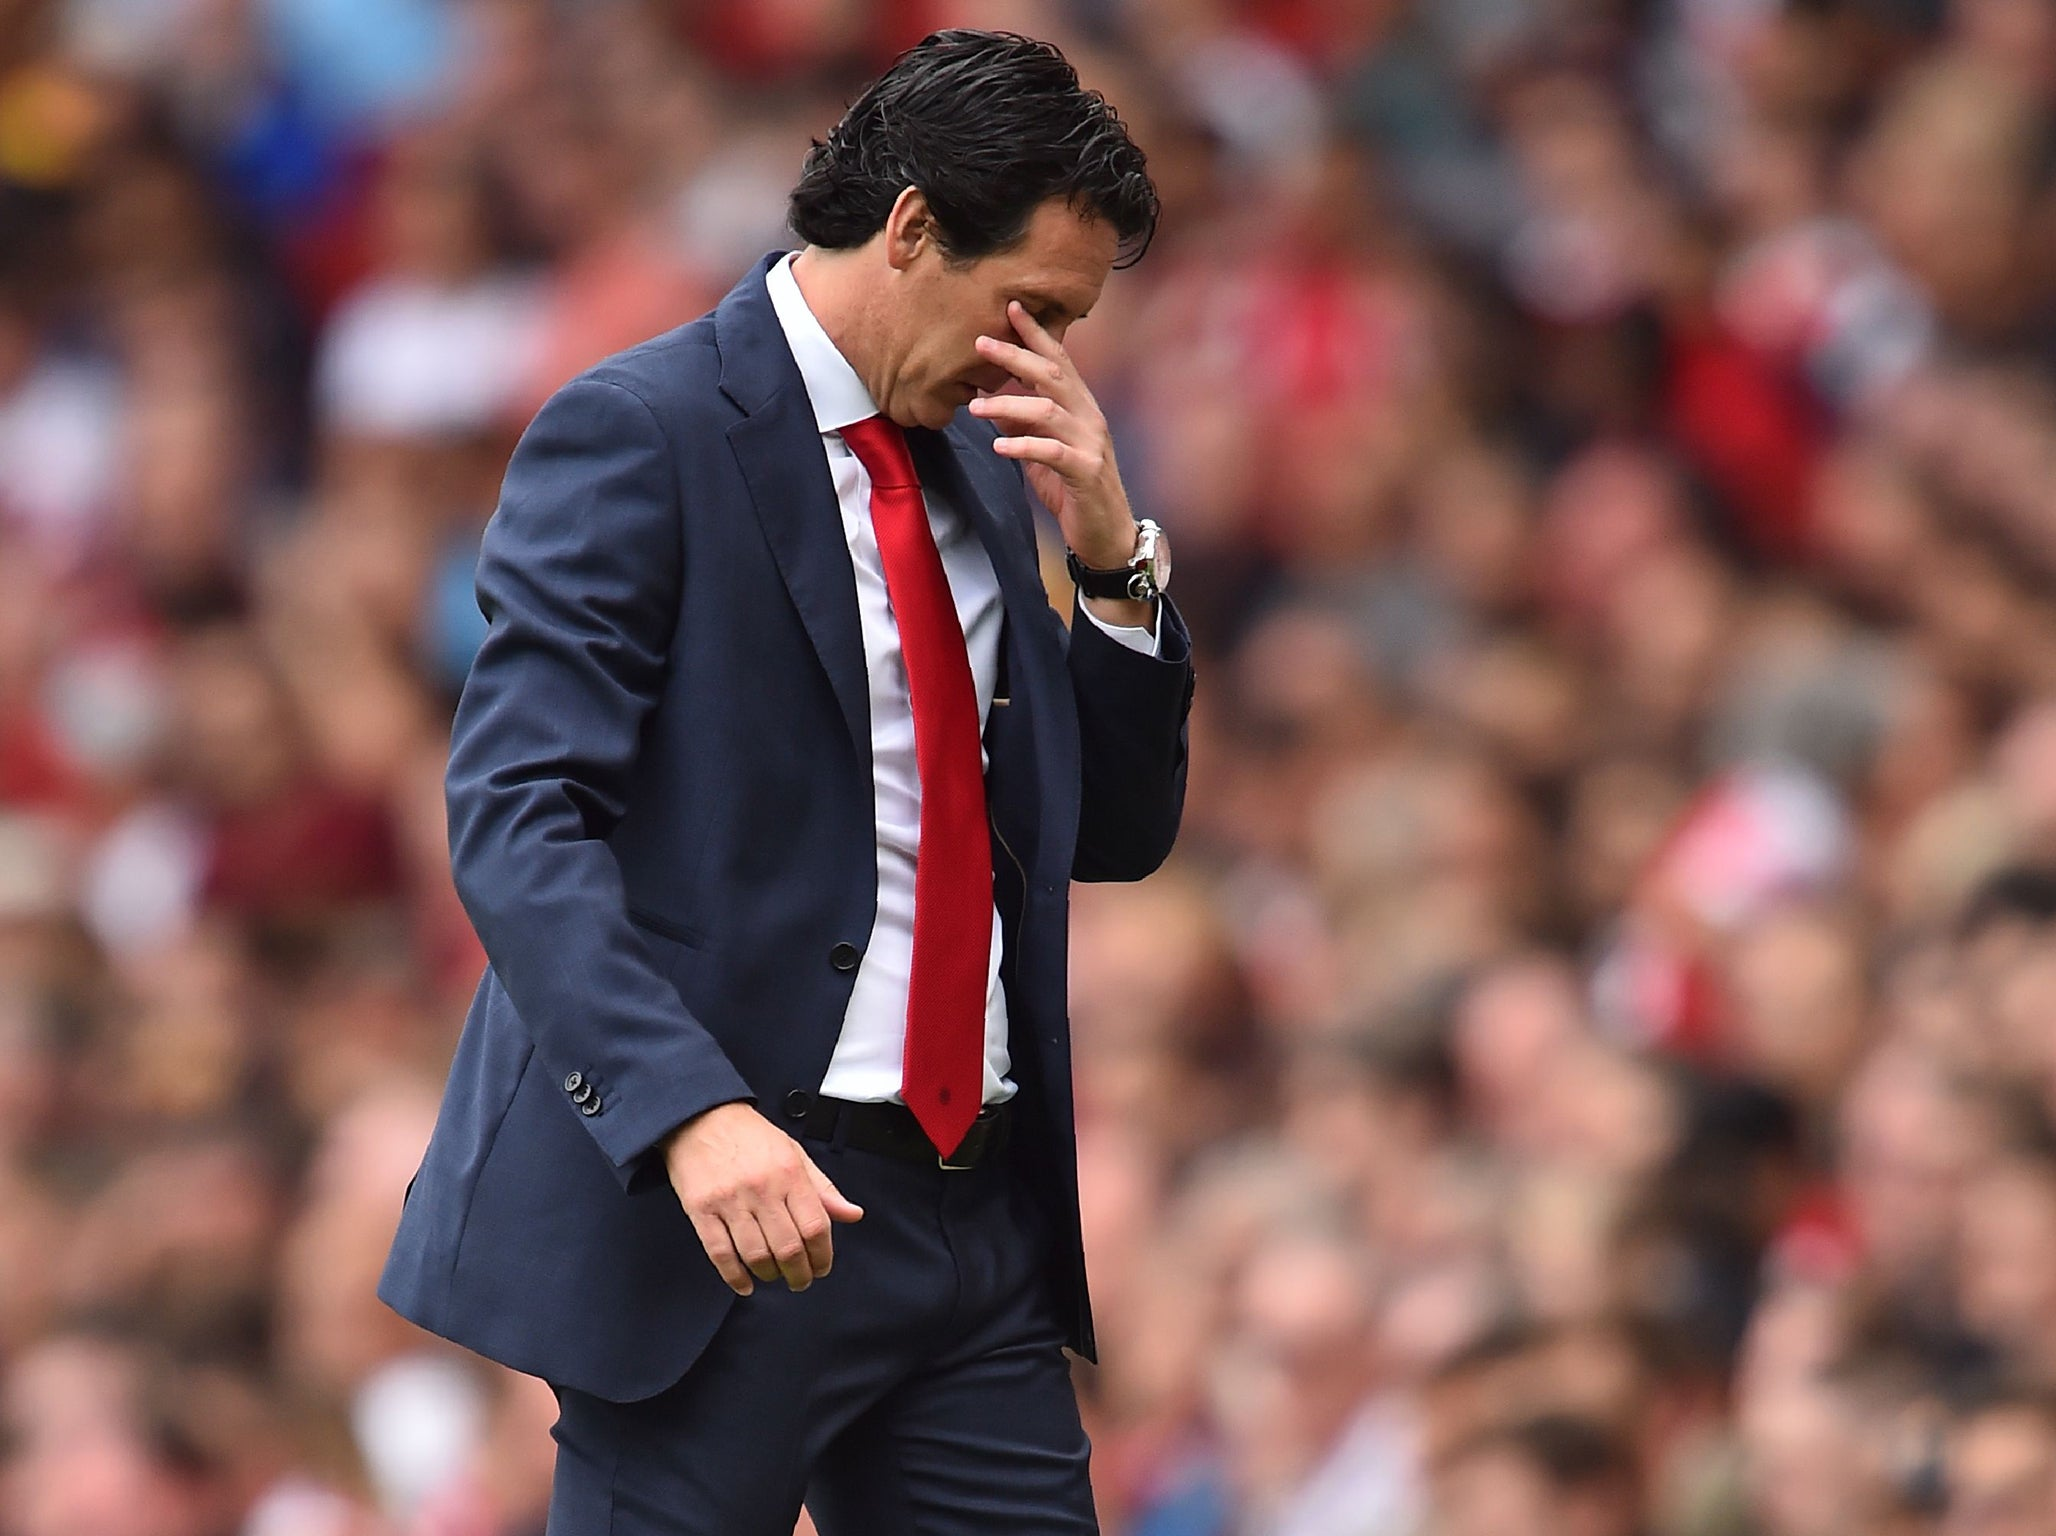 Arsenal news: Tony Adams issues fierce criticism of Unai Emery after Manchester City defeat